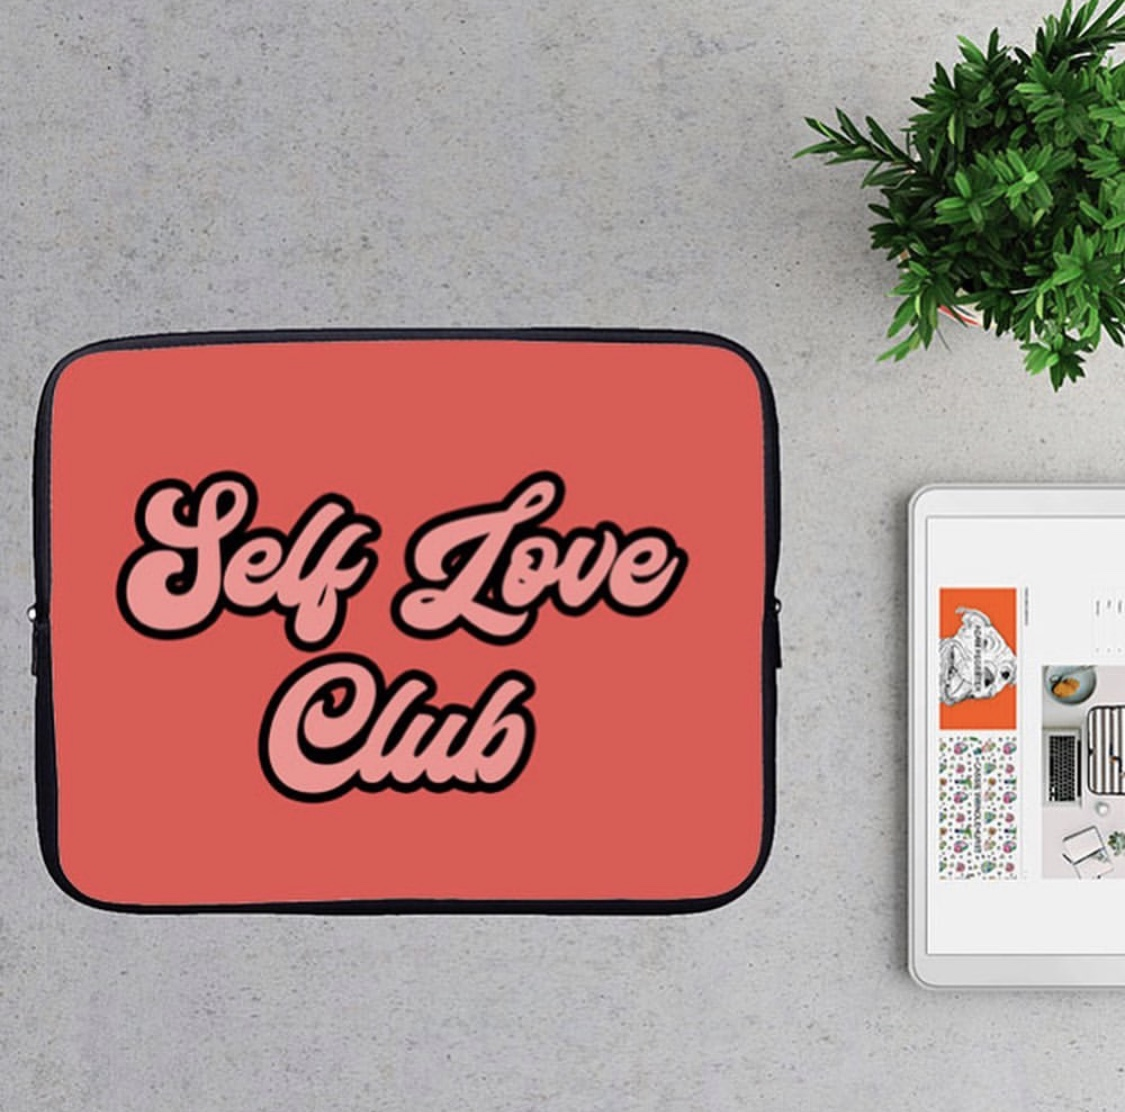 Personalised laptop sleeve: SELF LOVE CLUB  by Sarah Talbot-Goldman – buy on ArtWOW